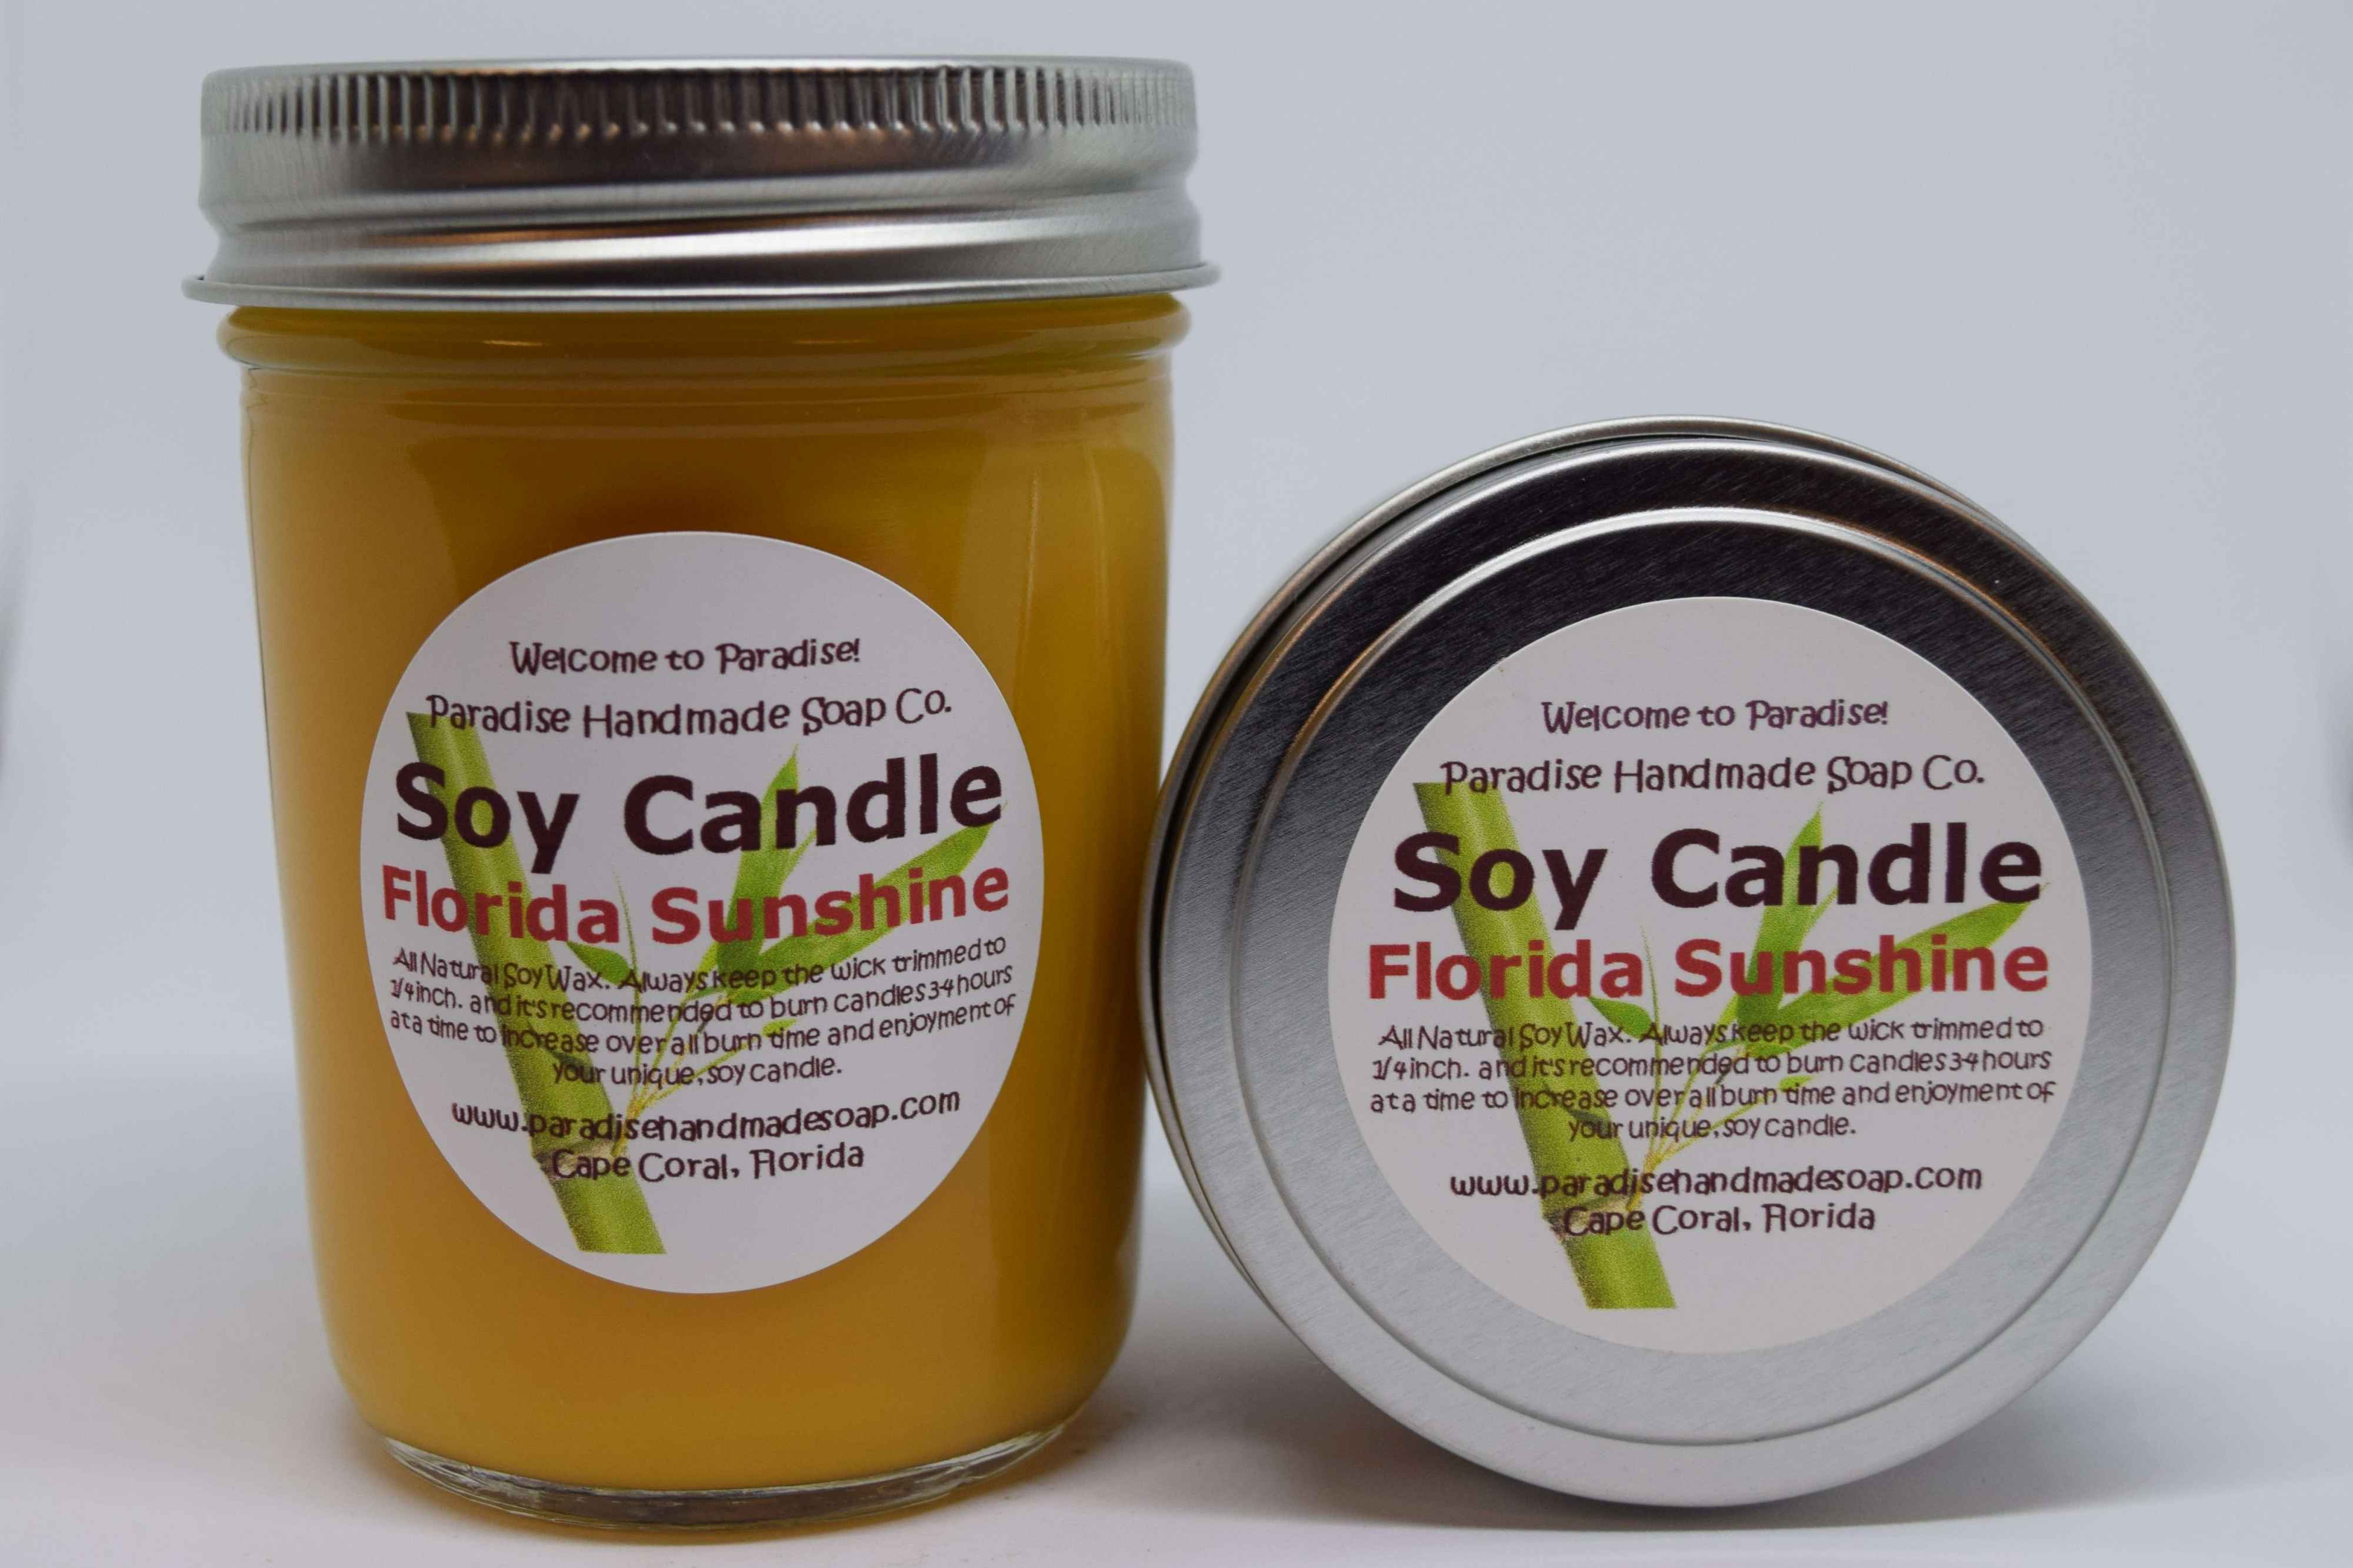 Florida Sunshine Candle